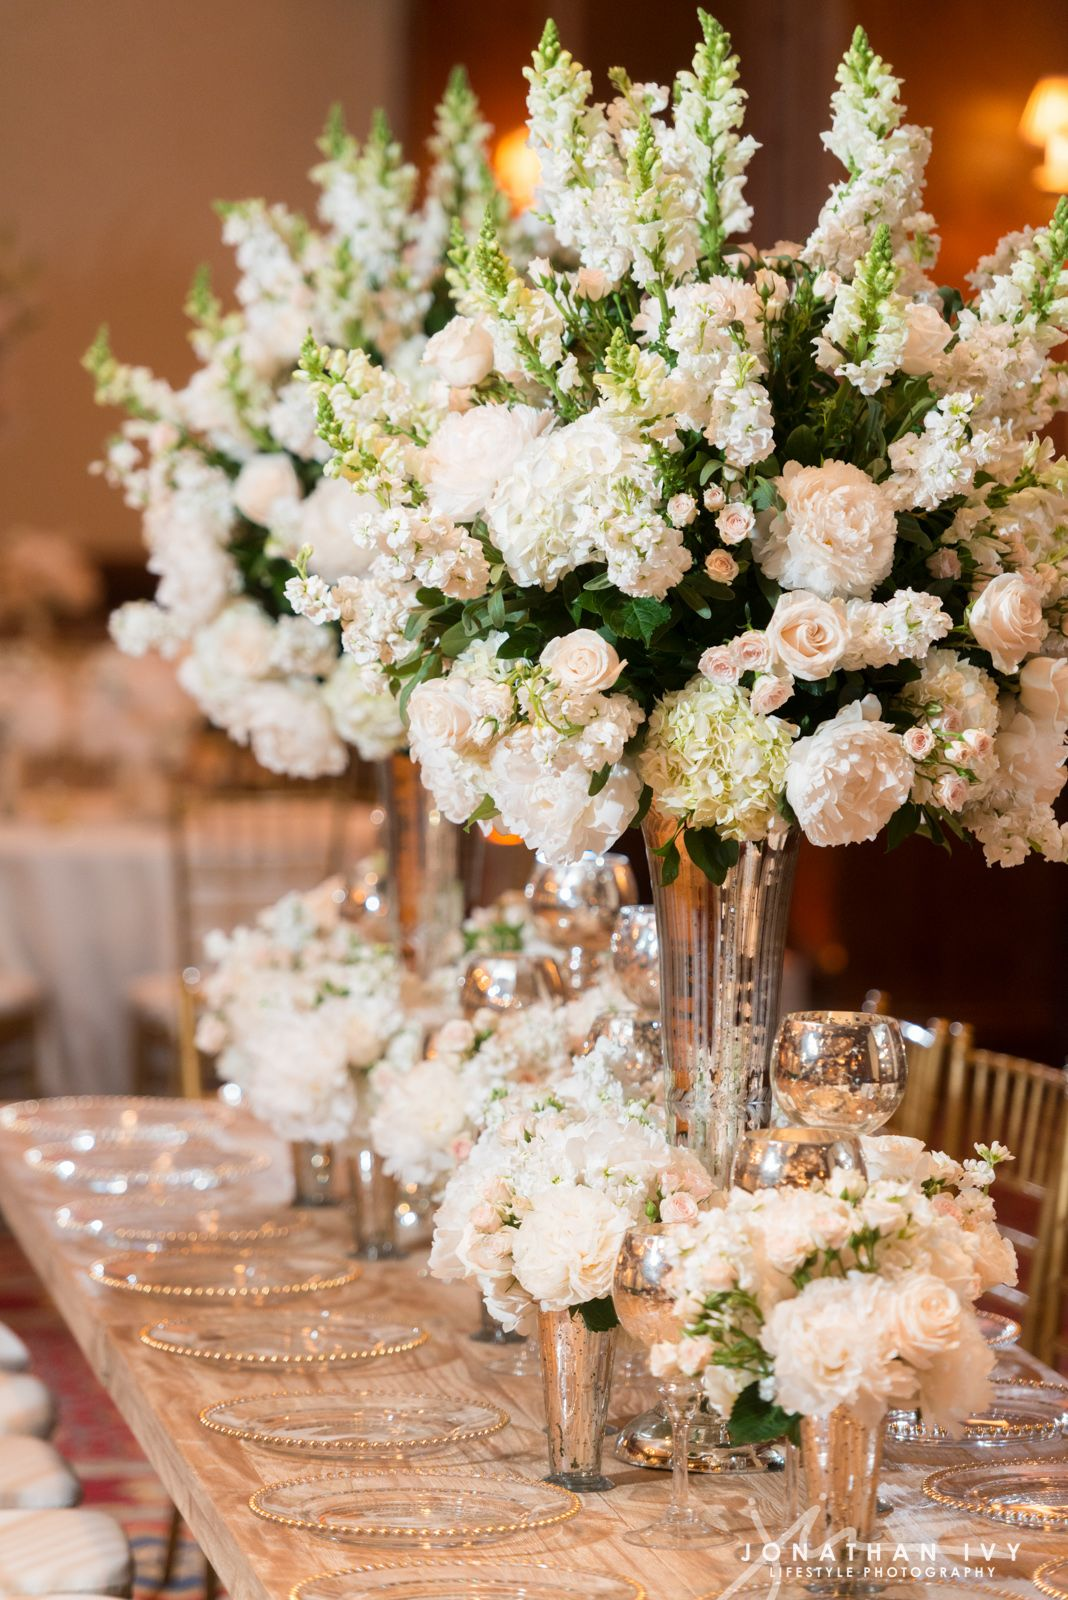 Large floral arrangements of white stock peonies and